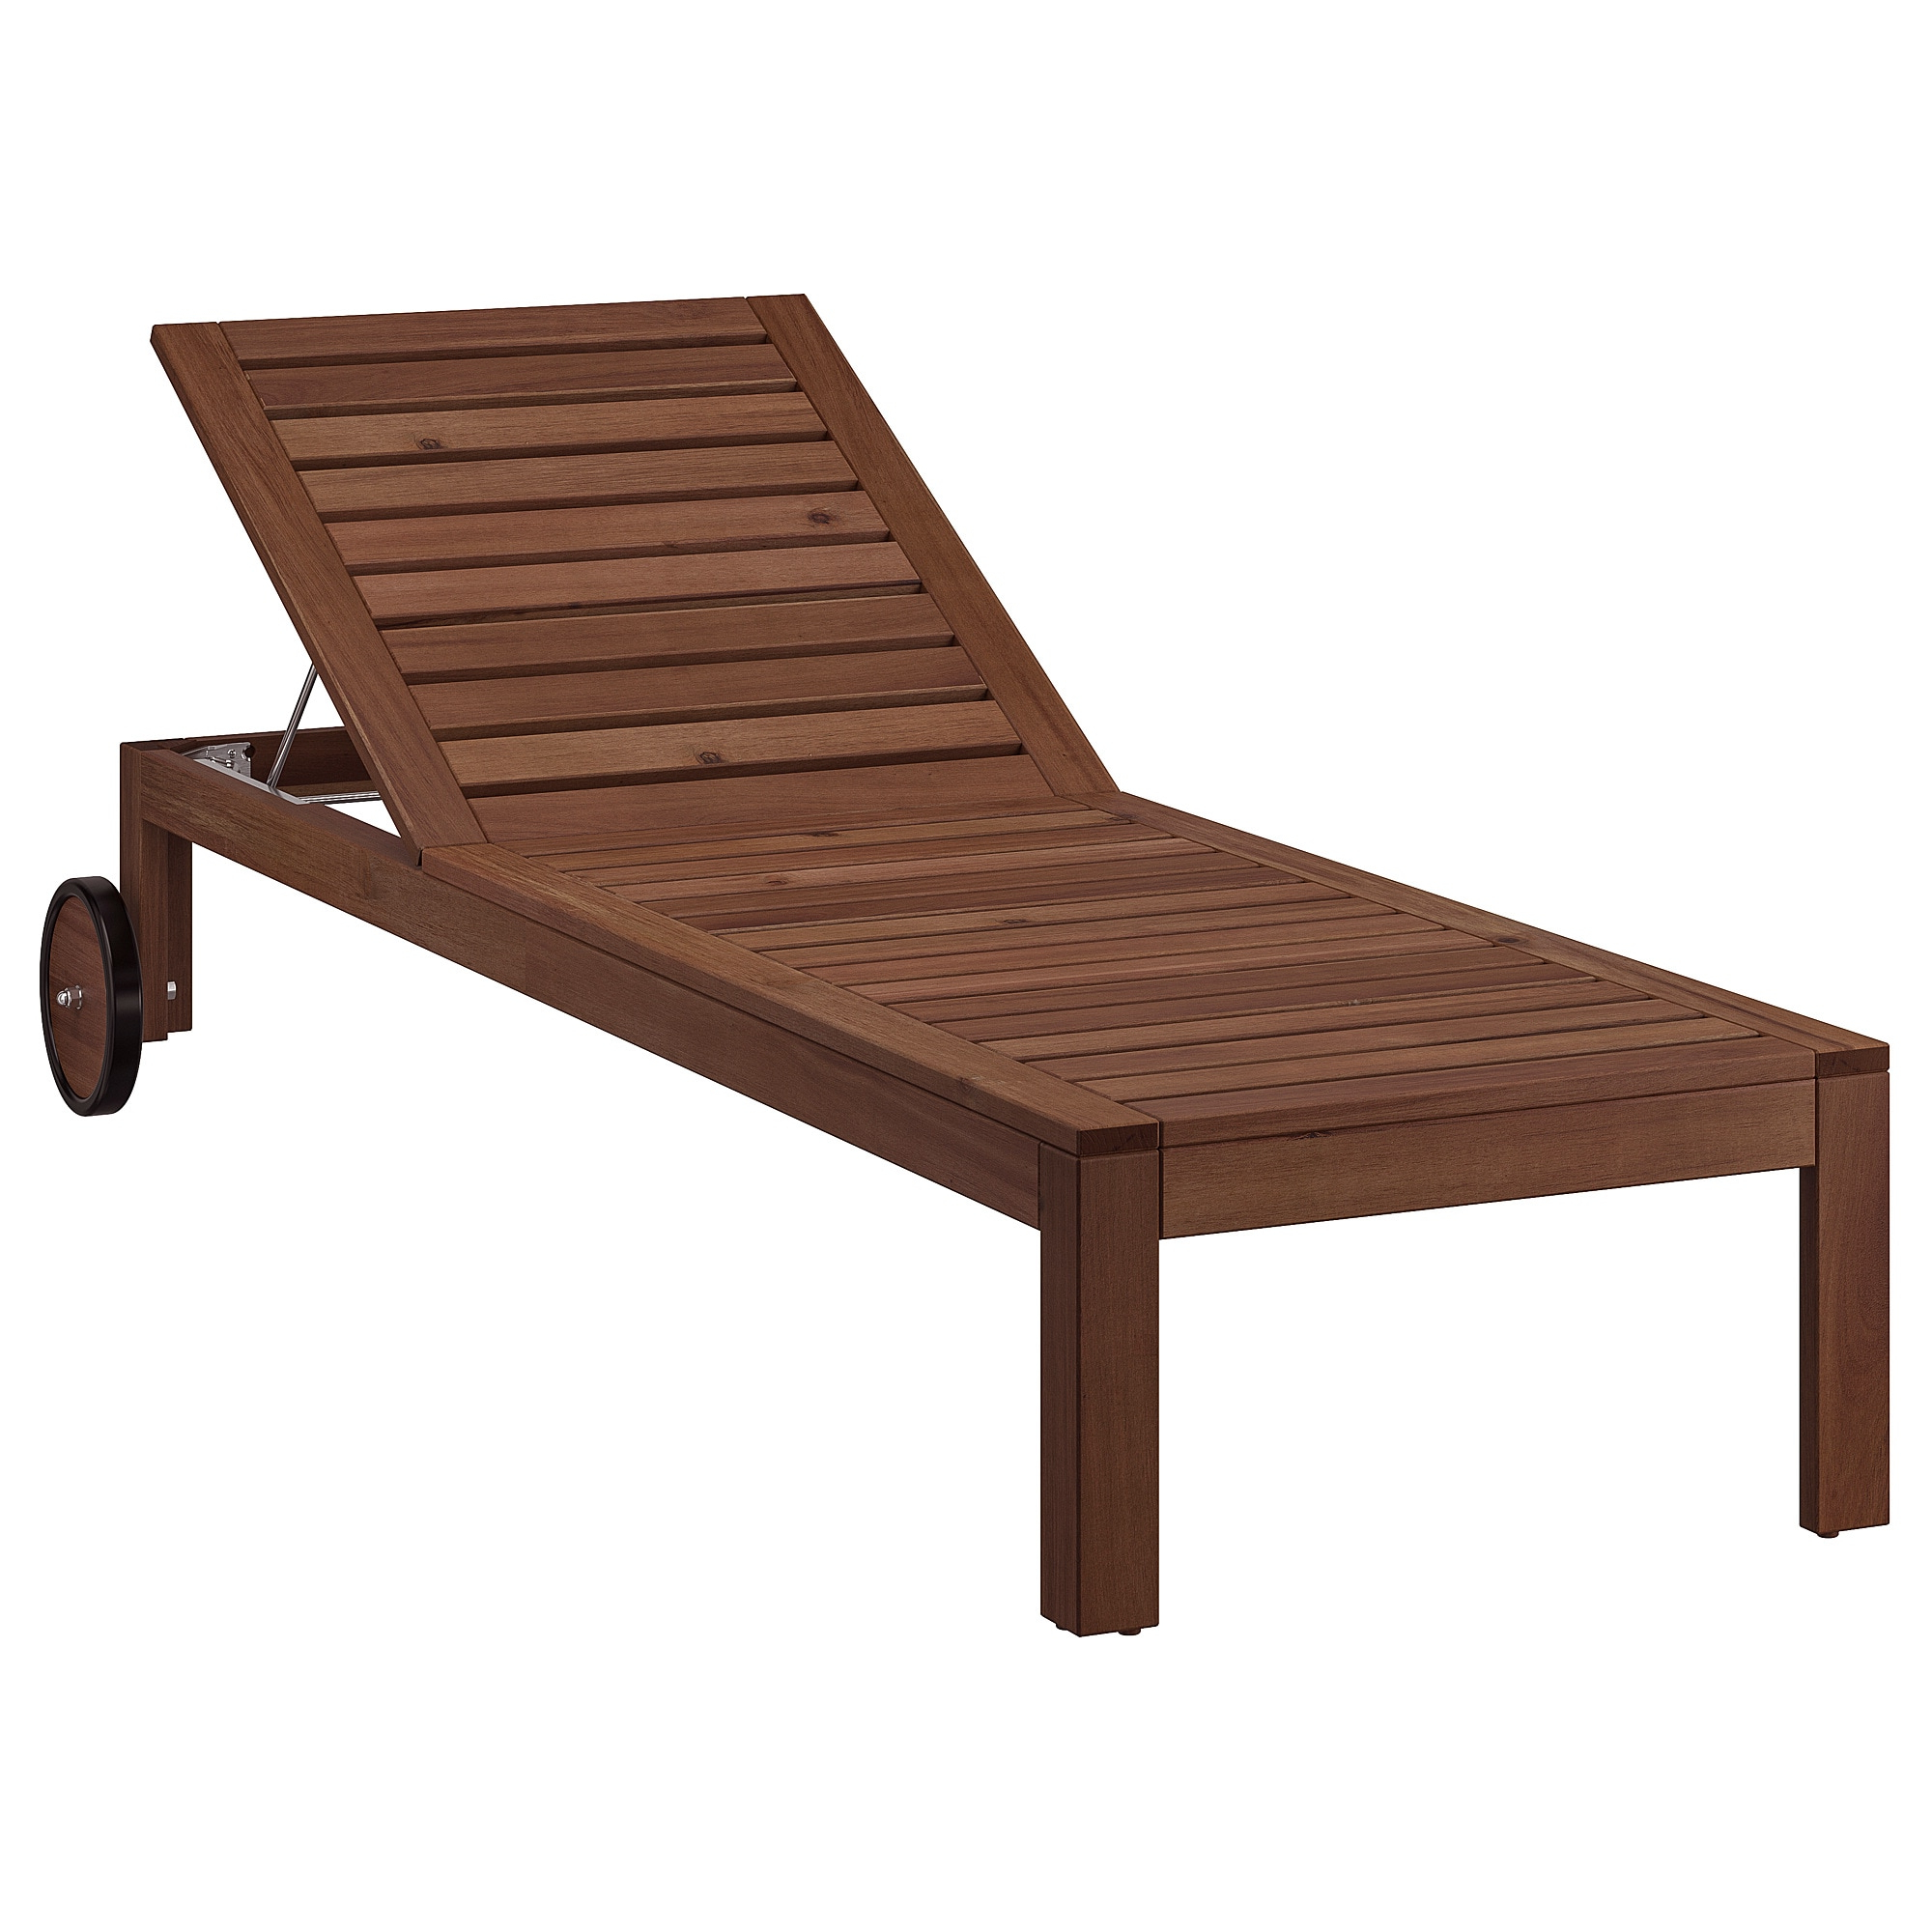 2019 Outdoor Cart Wheel Adjustable Chaise Lounge Chairs In Chaise Äpplarö Brown Stained Brown (Gallery 12 of 25)